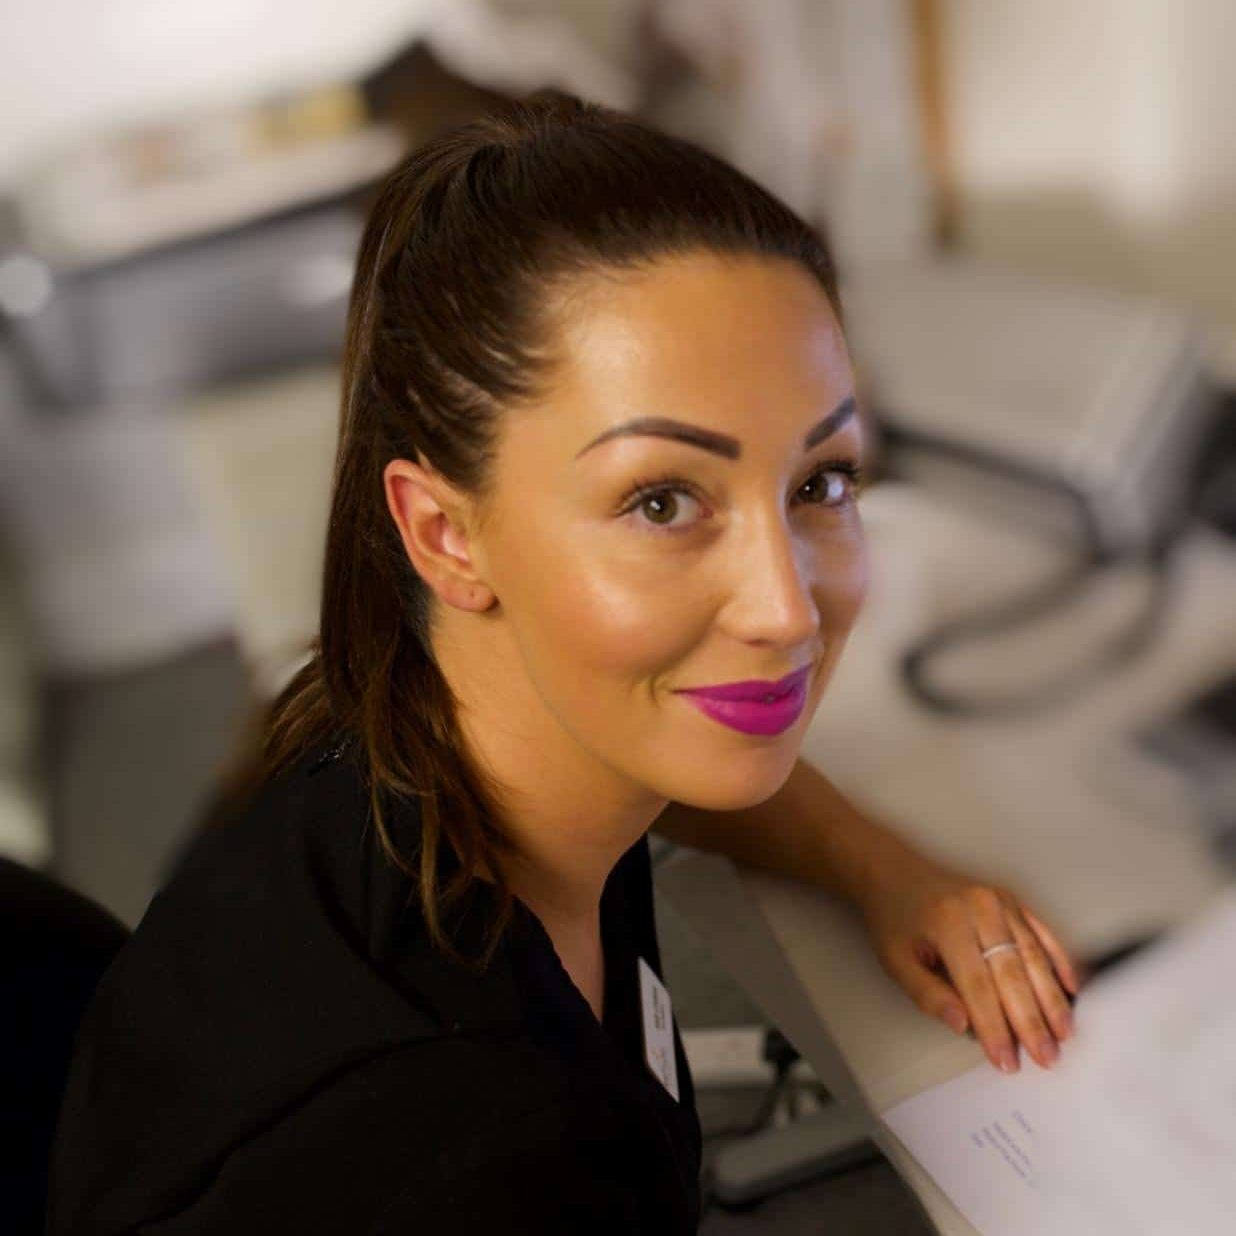 Kelly Umbers, our expert Skin Therapist